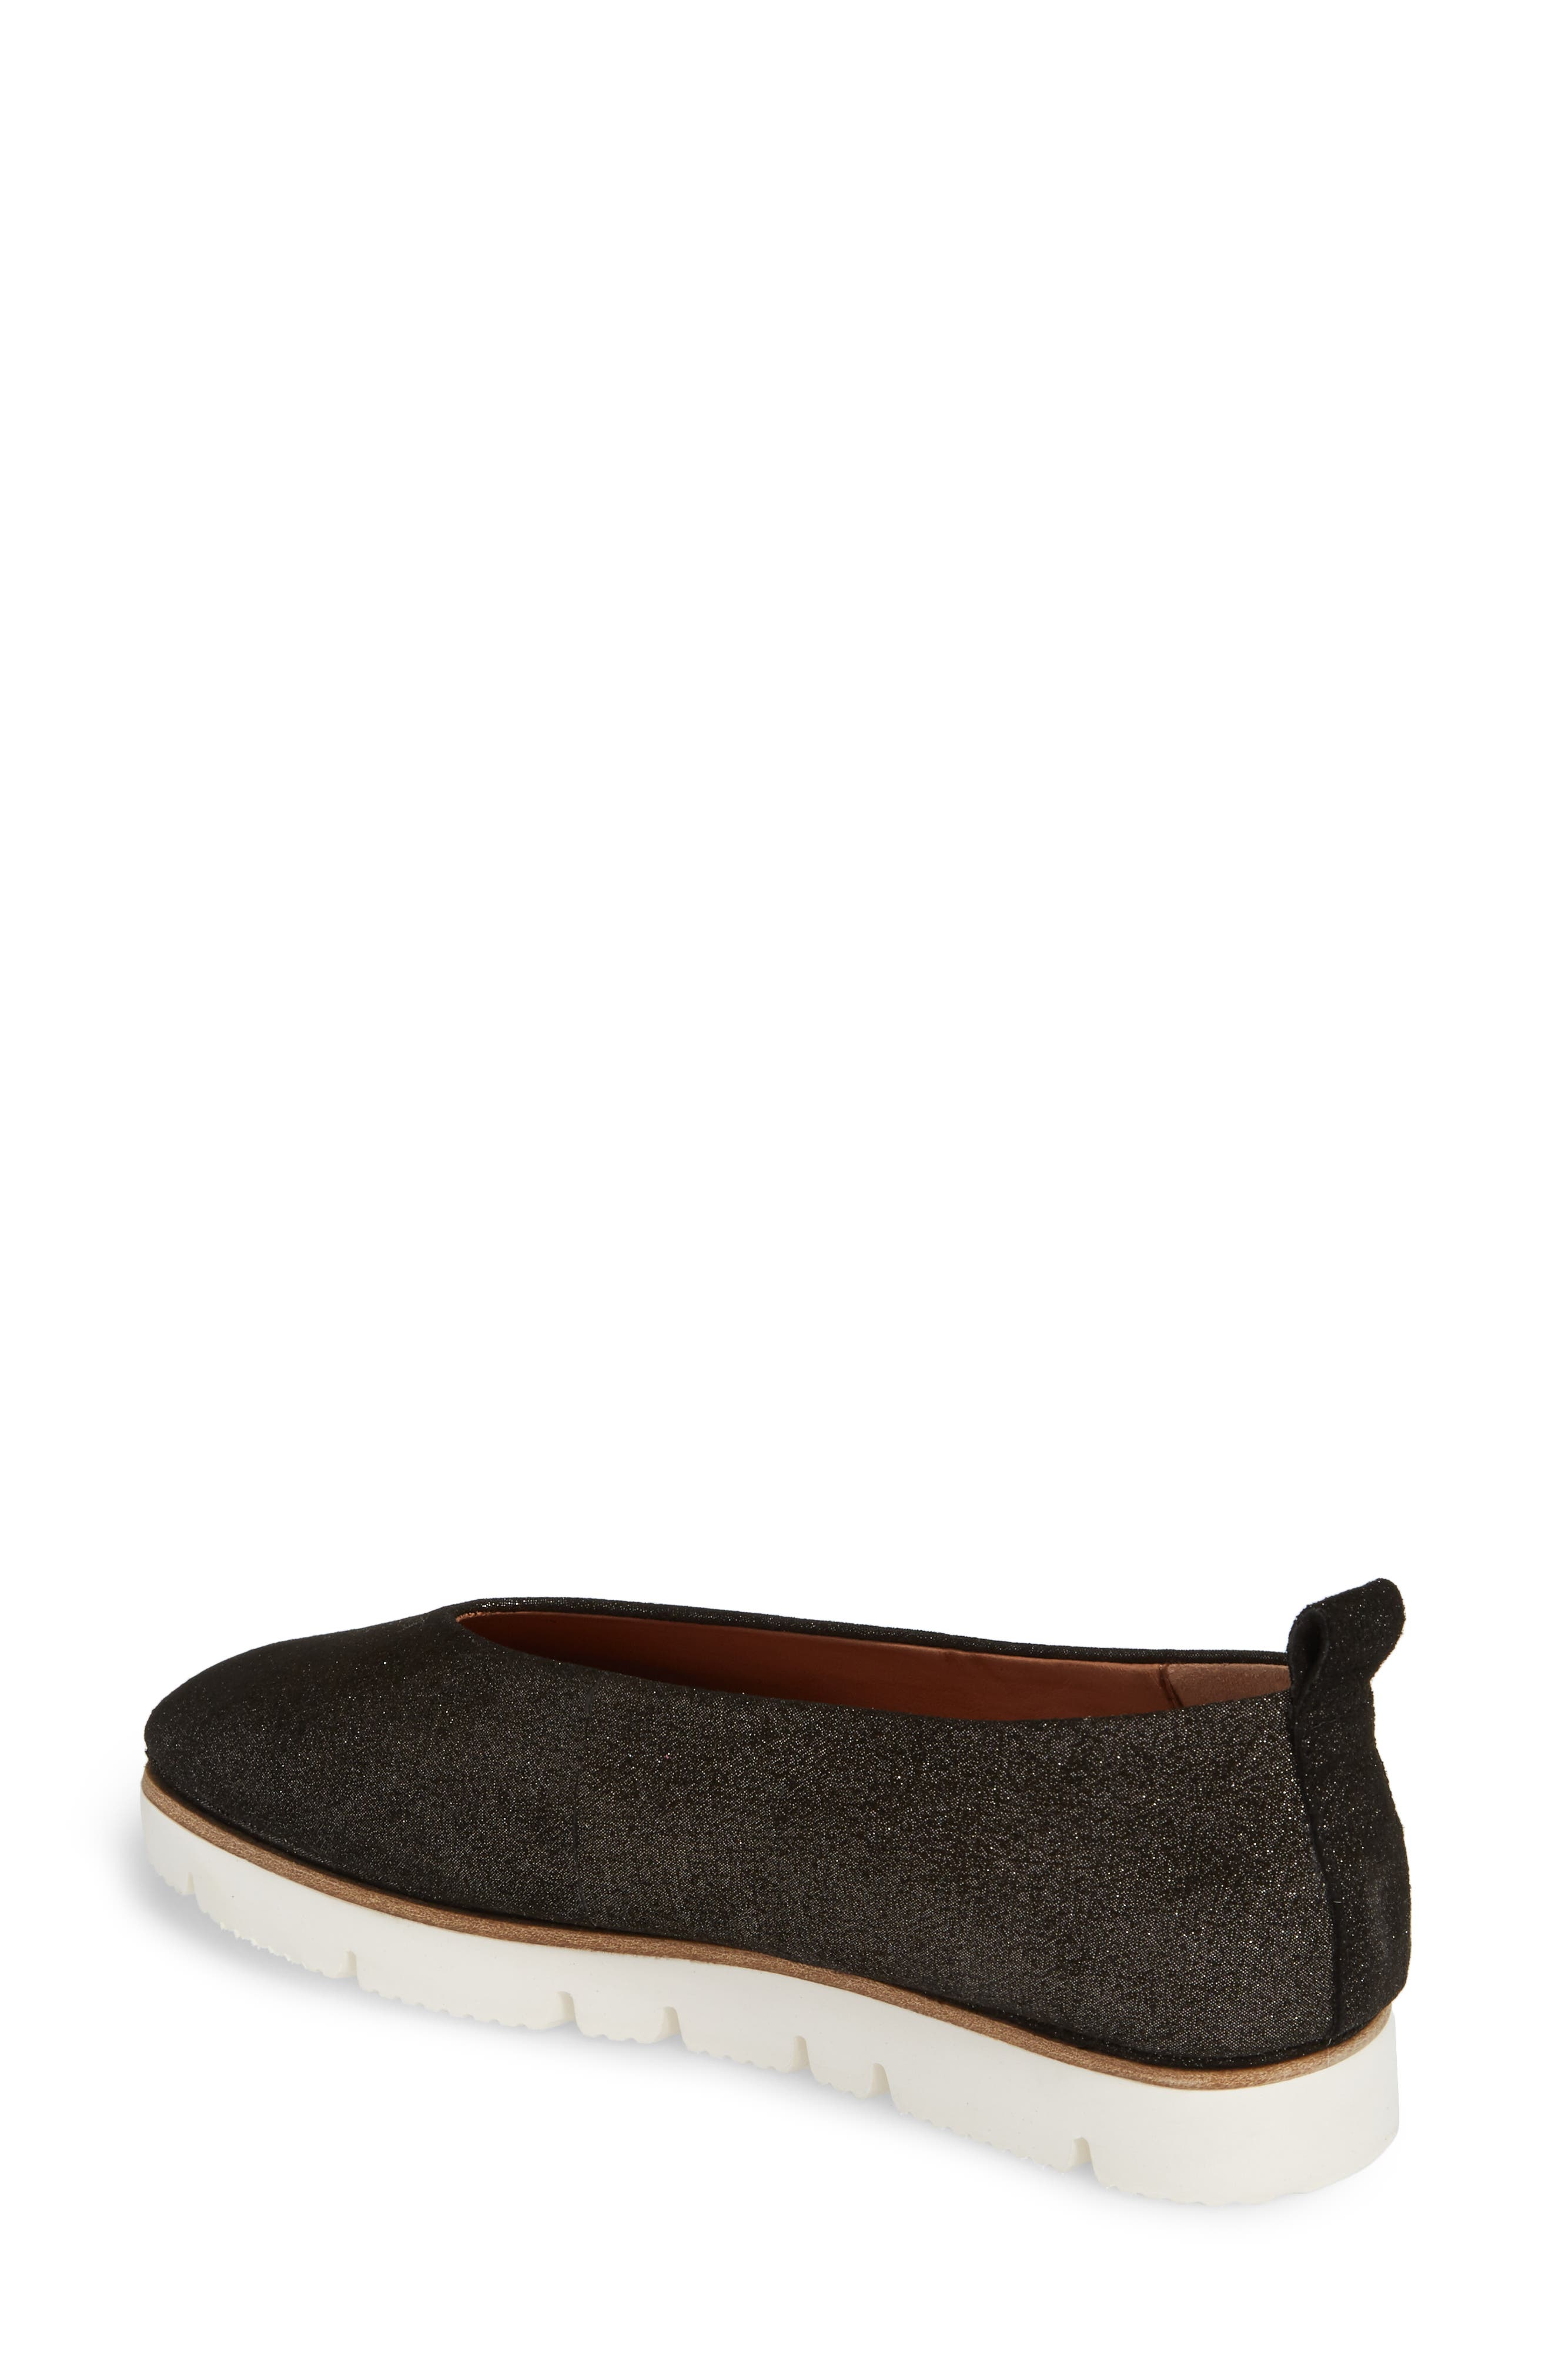 GENTLE SOULS BY KENNETH COLE, Demi Flat, Alternate thumbnail 2, color, BLACK EMBOSSED LEATHER